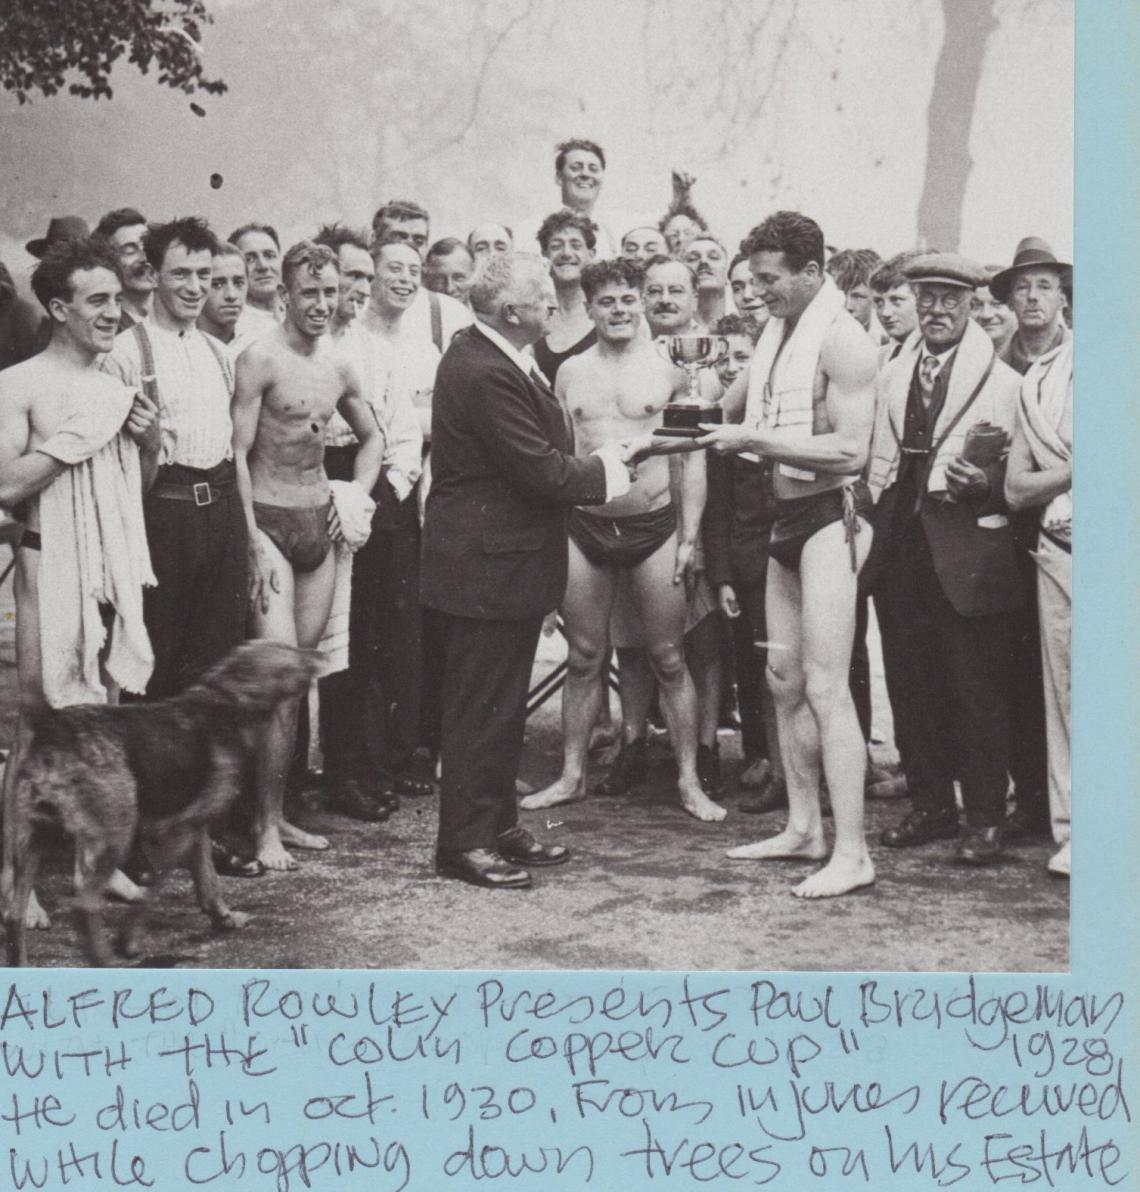 The 880 yard race replaced the scheduled Bridgeman team race.  This relay race was first swum in 1931 in memory of Paul Bridgeman, who died in a tragic accident in 1930.  Paul's wife and children continued to support the race through nine decades.